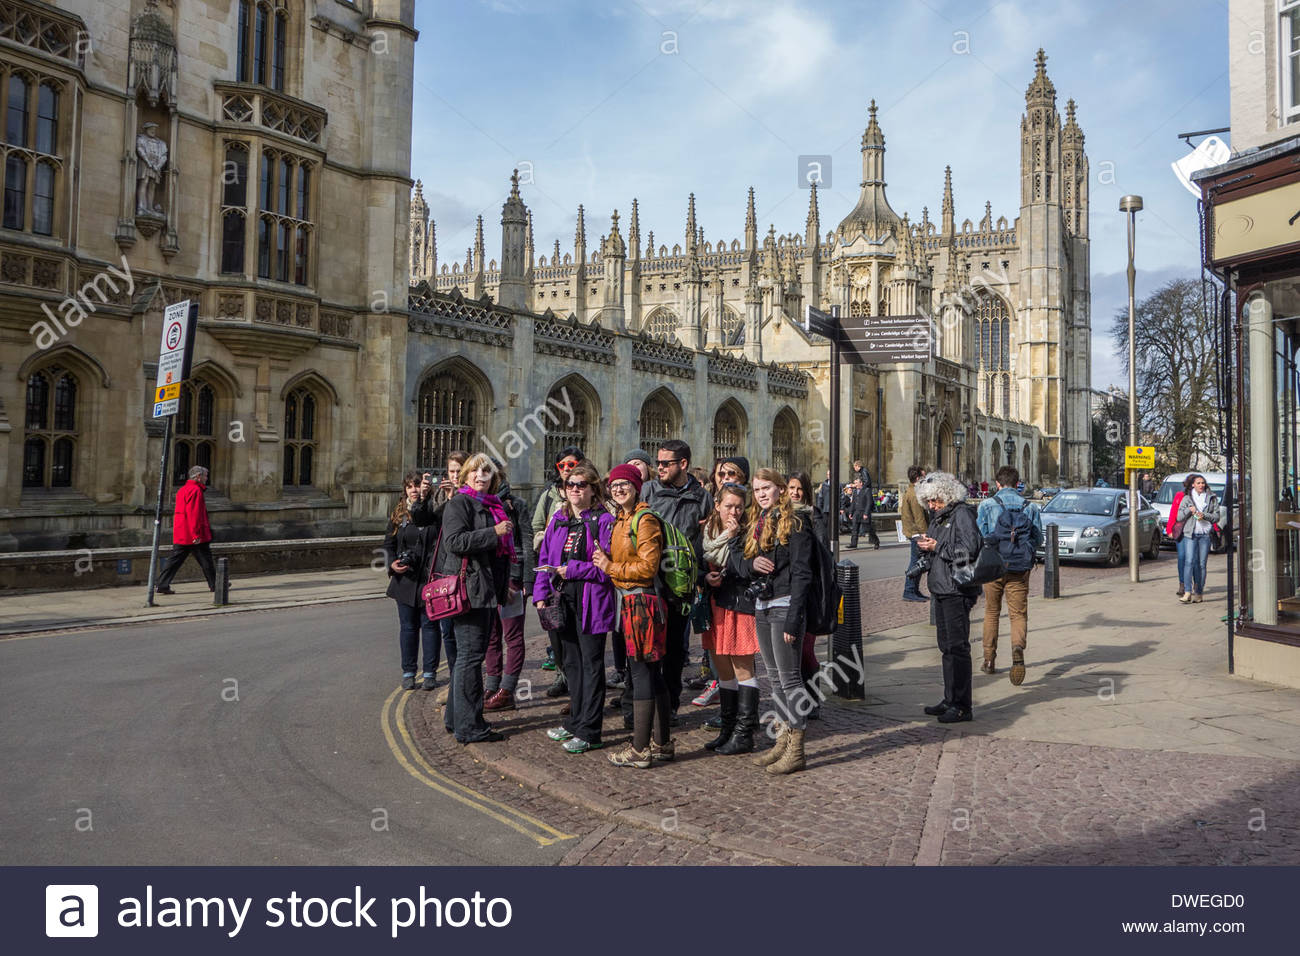 A group of tourists pause with their tour guide on Kings Parade with Kings College in the background. - Stock Image